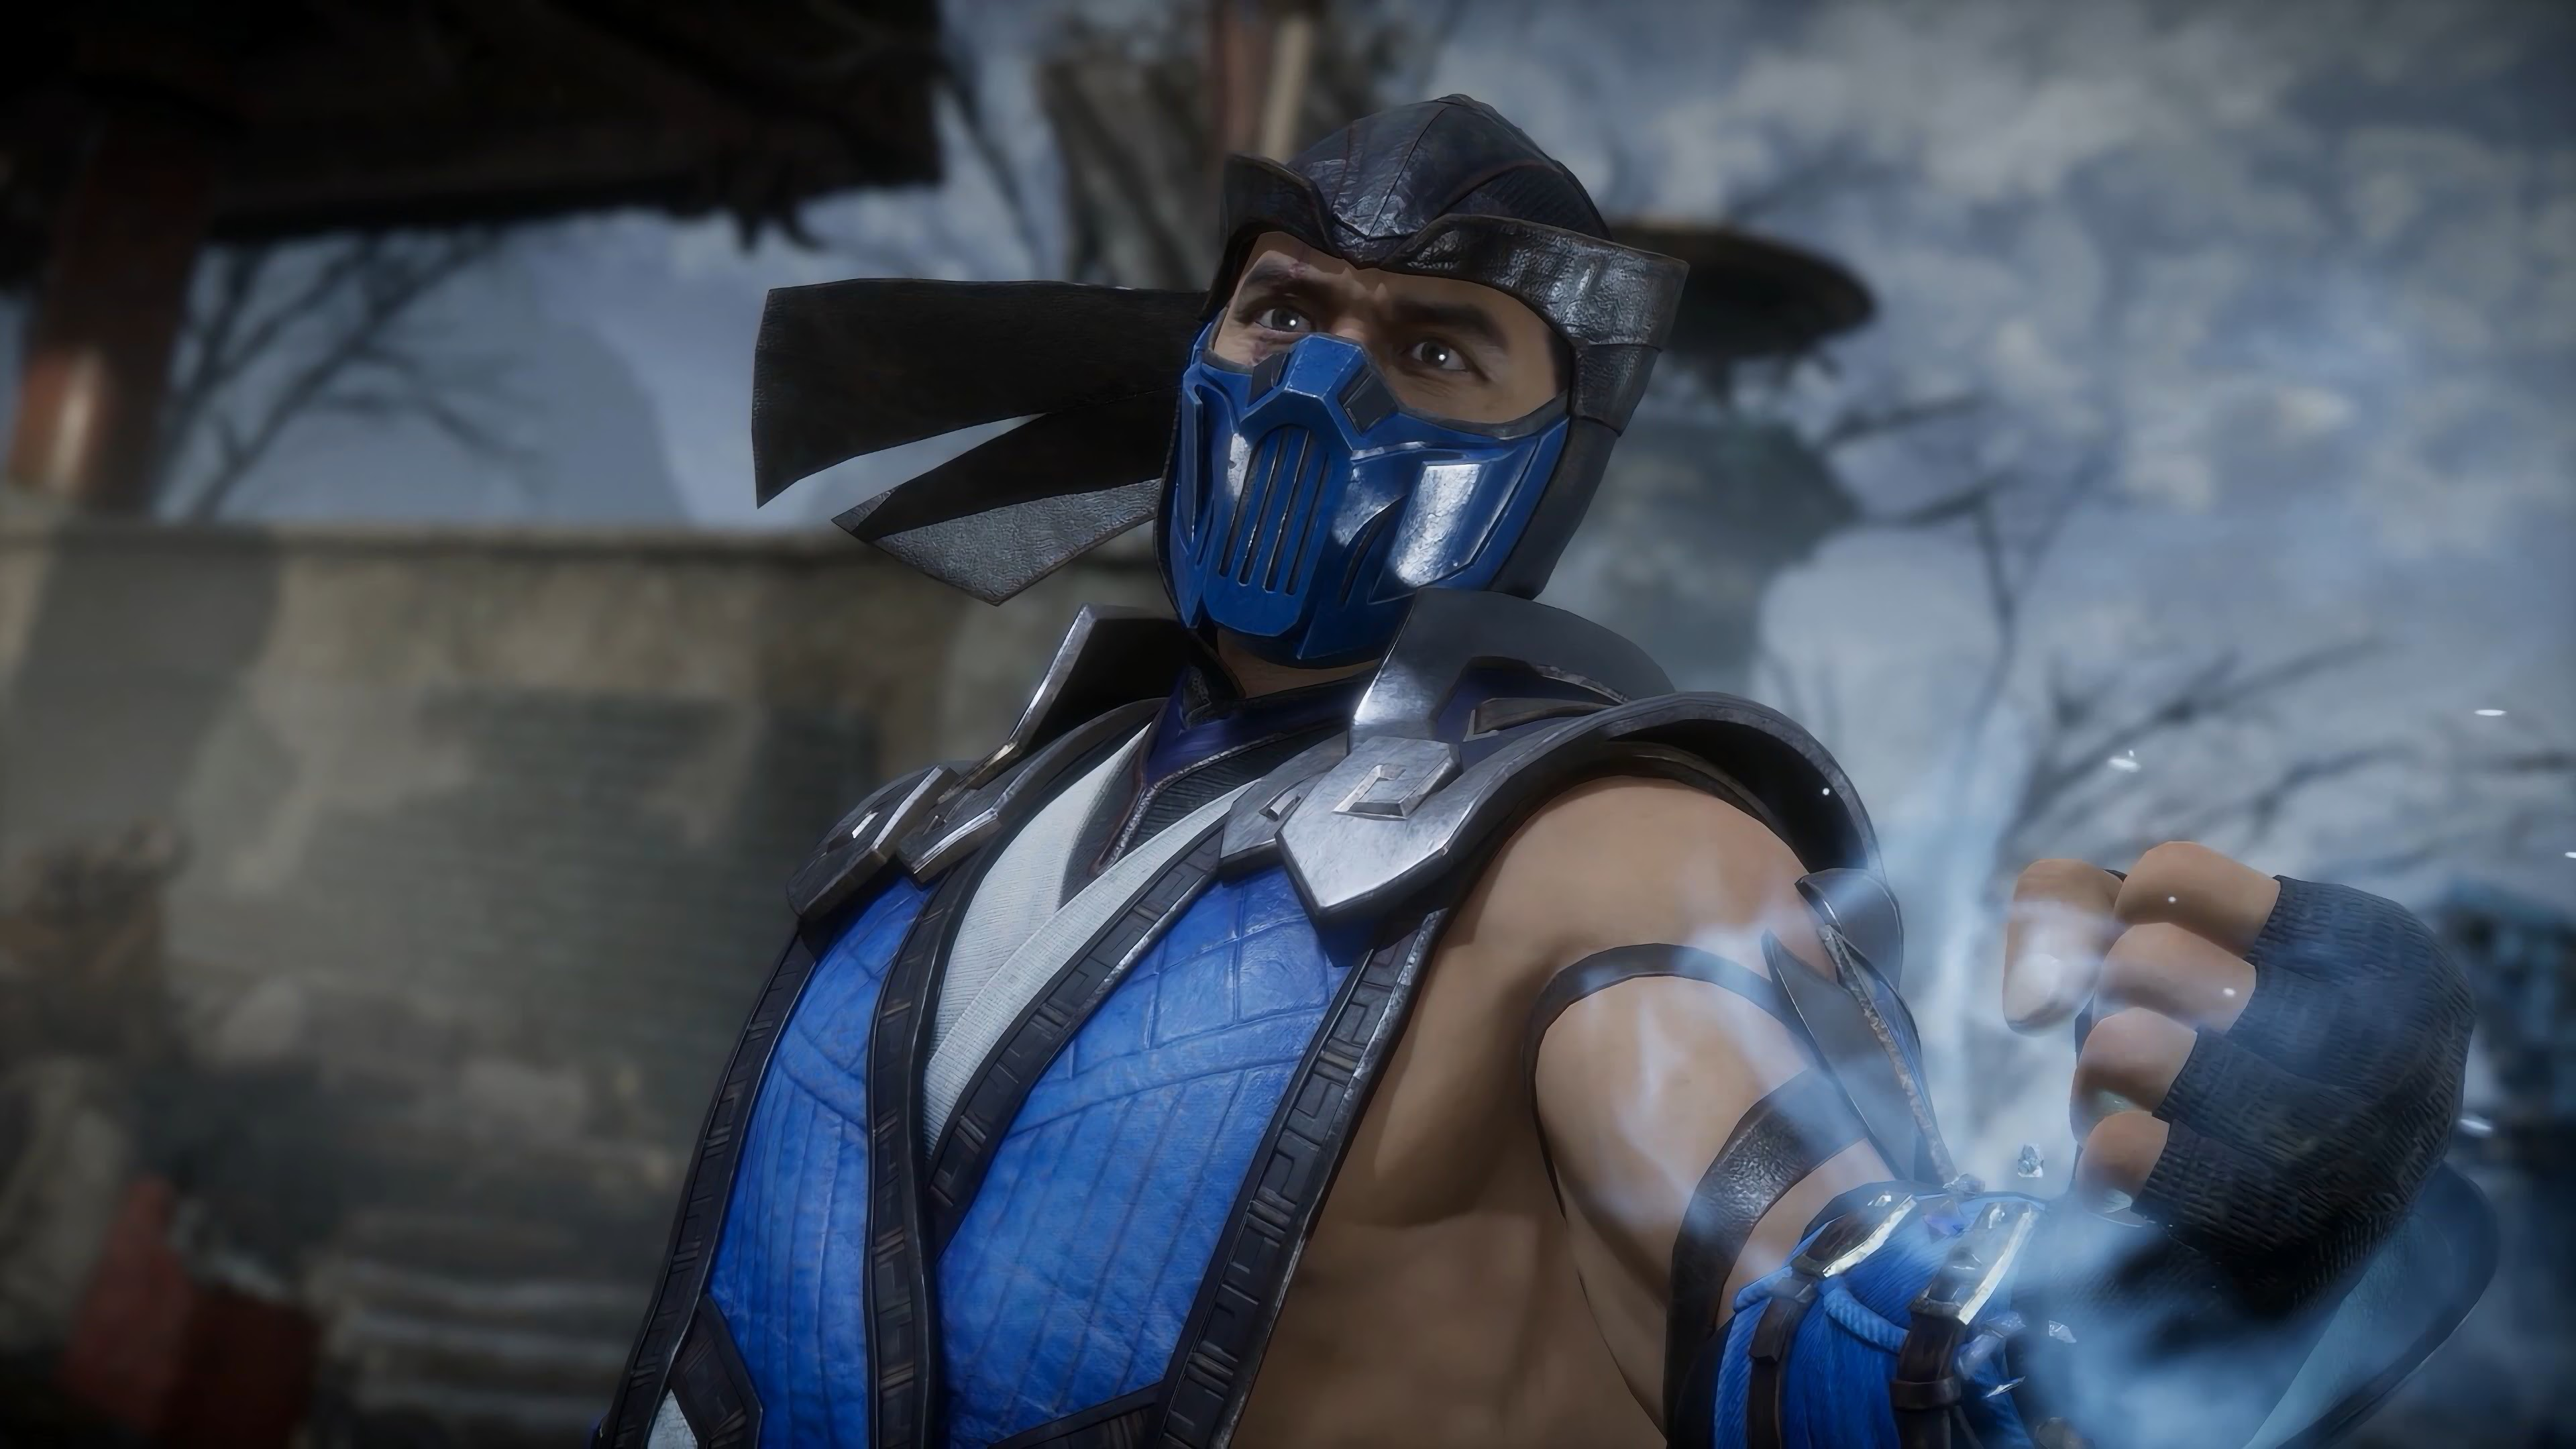 Sub Zero Mortal Kombat 11 4k 14 Wallpaper